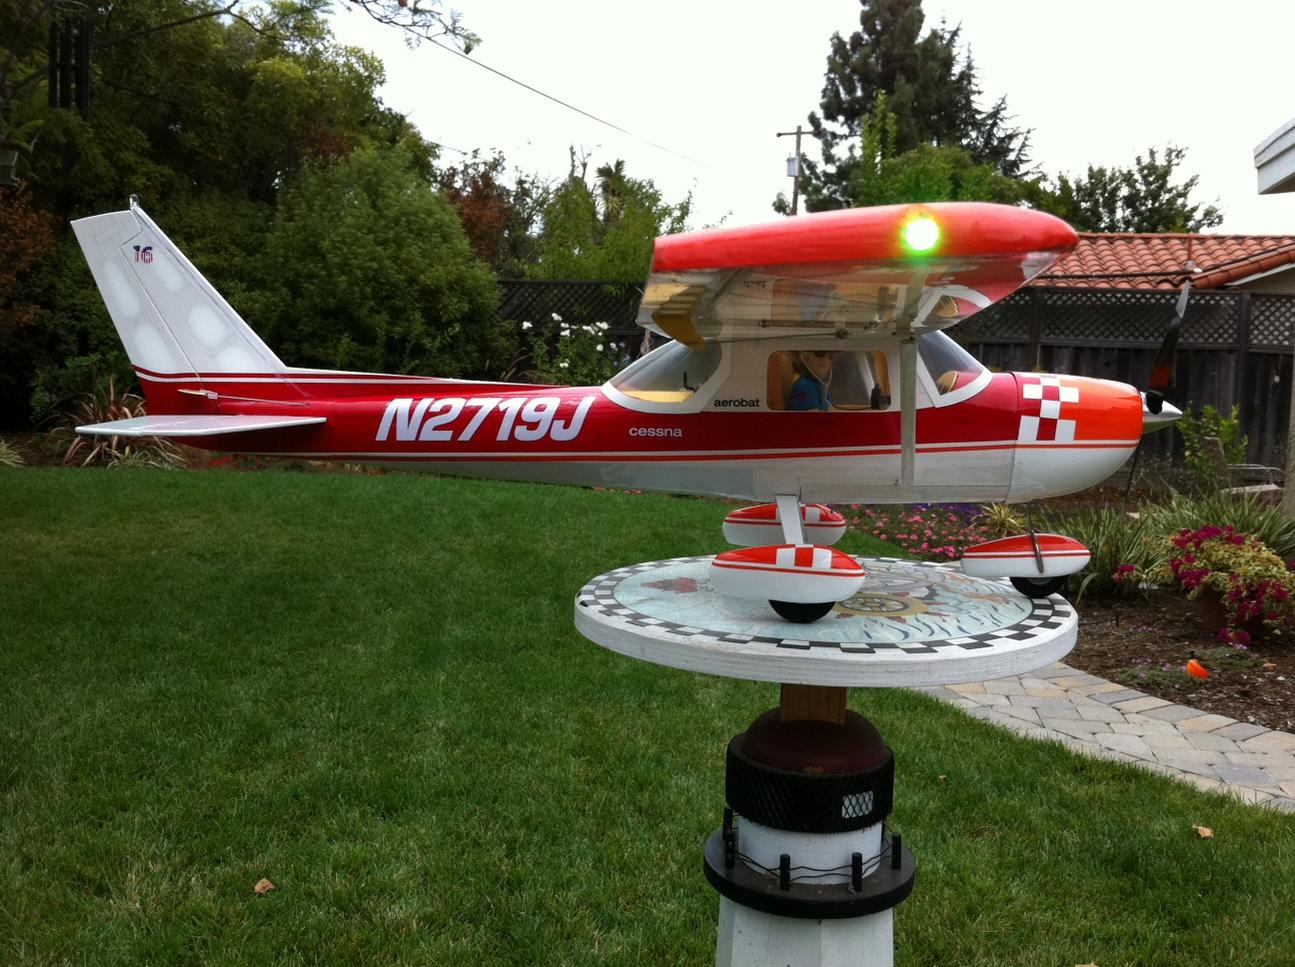 rtf electric rc jets with Attachment on Micro Rc Airplanes also 357473289142413176 moreover Mini Quadcopter further Showthread moreover Attachment.